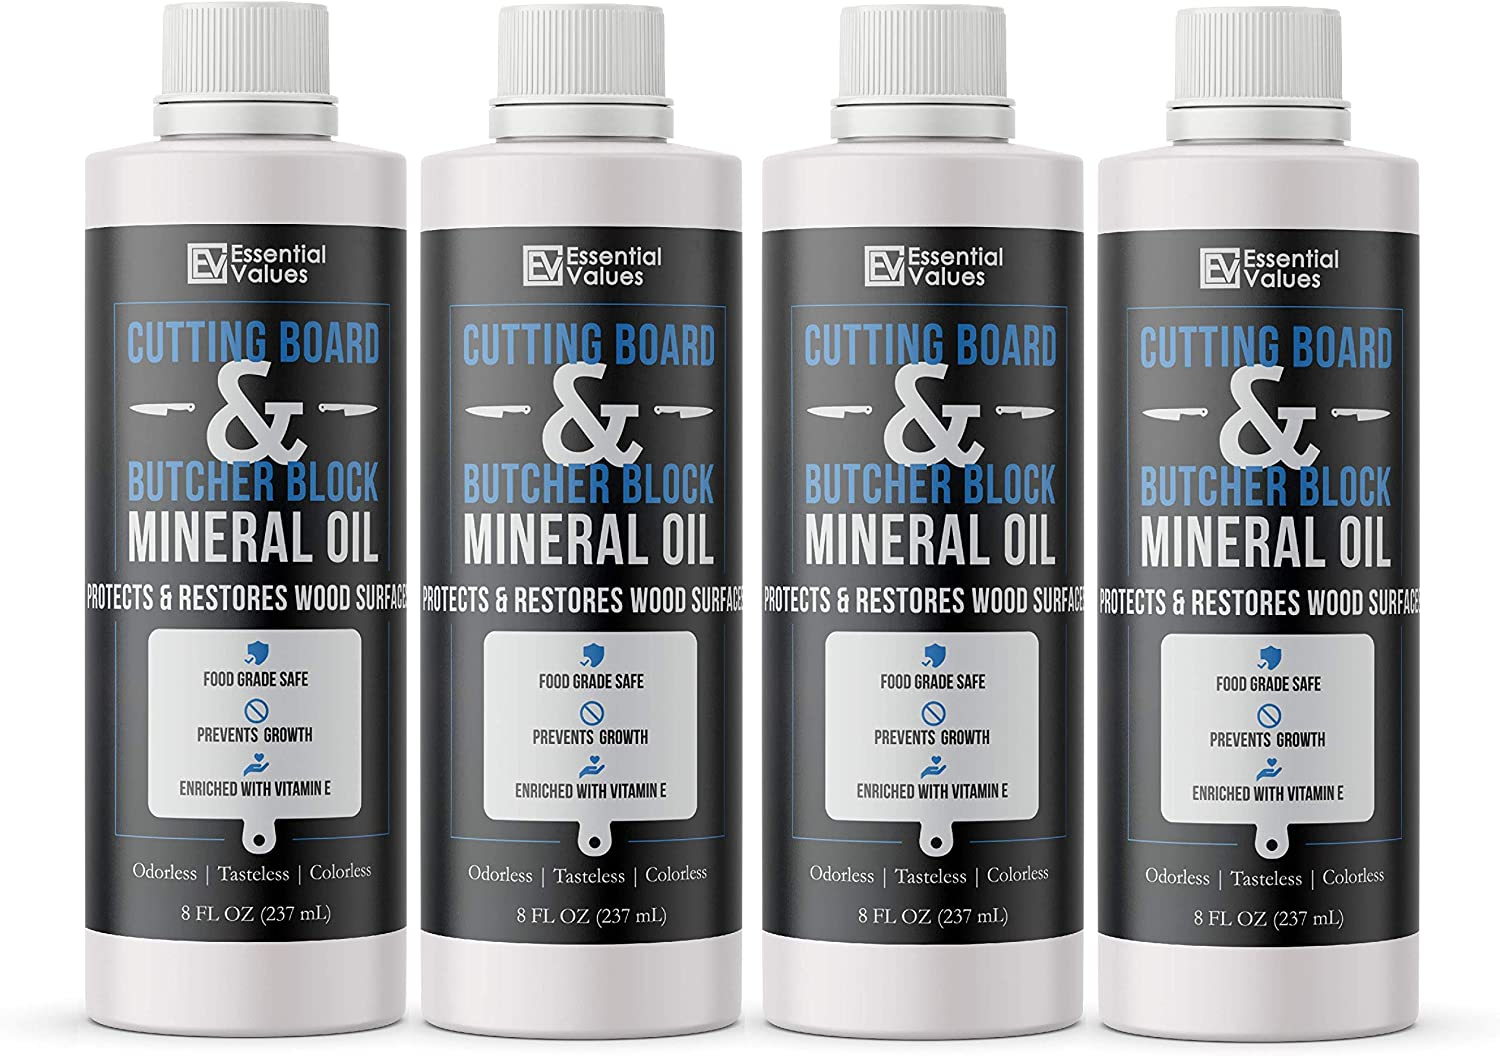 Essential Values (4 Pack) Cutting Board & Butcher Block Mineral Oil (8 fl oz) – Perfect for Protecting & Restoring Wood Surfaces, Compatible with All Wood Types & Food Grade Safe, Proudly Made in USA